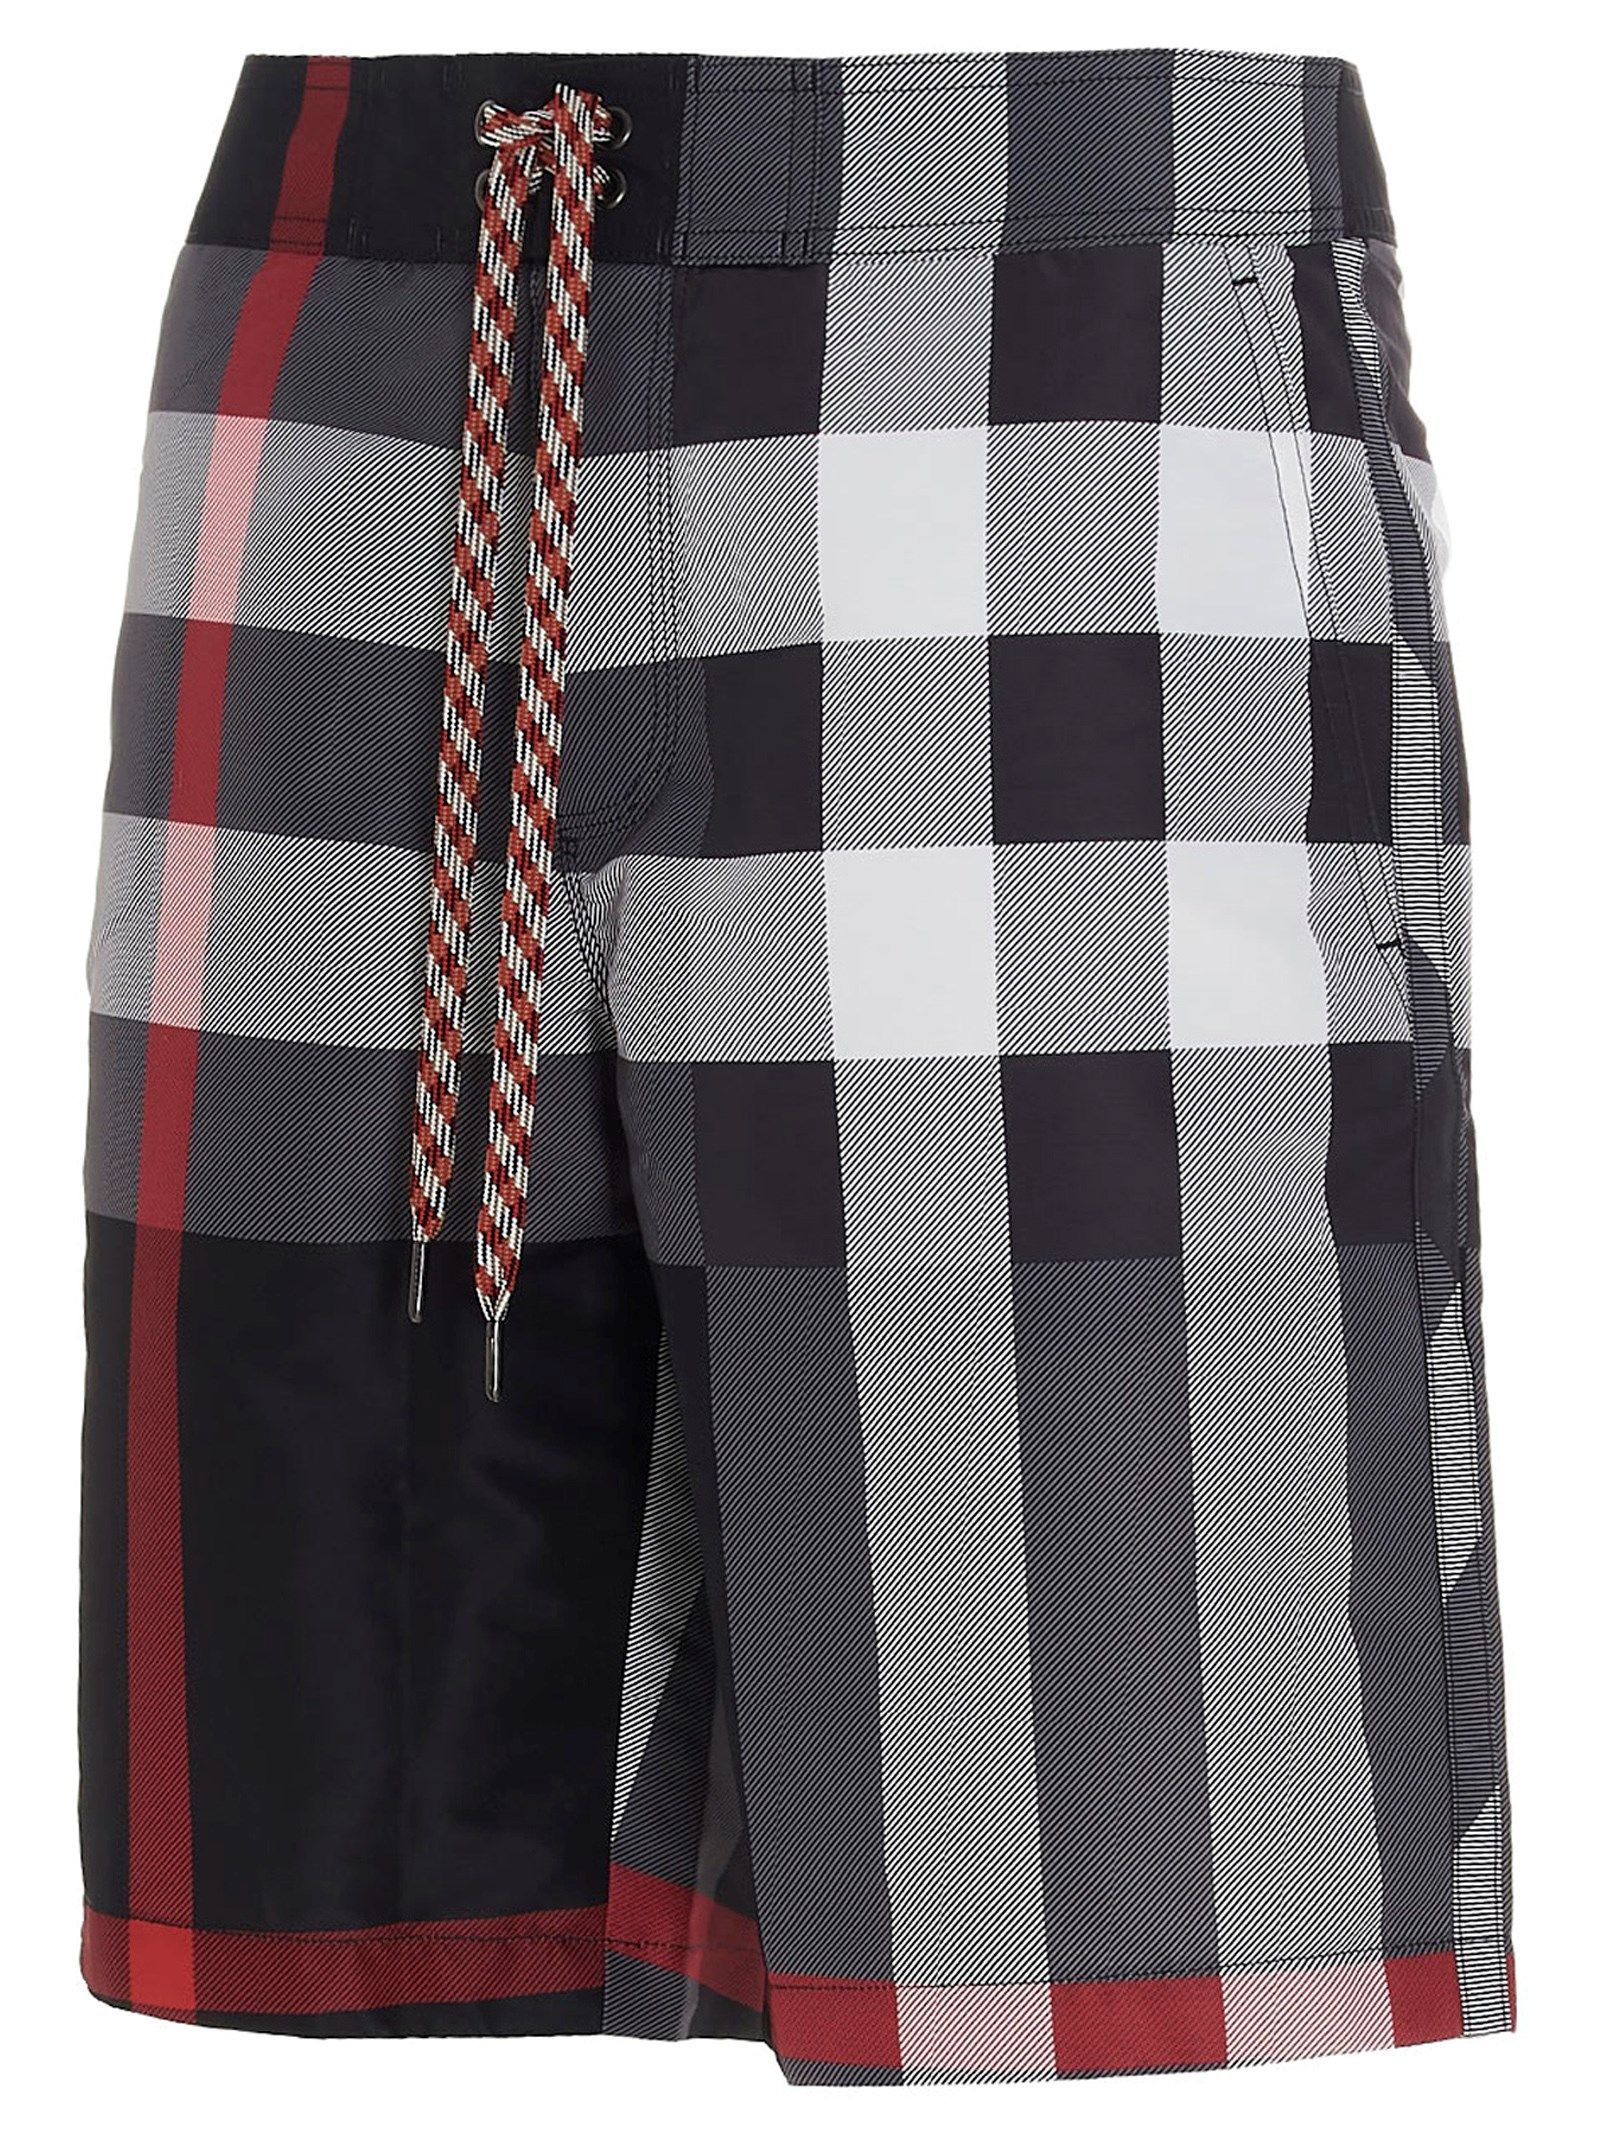 BURBERRY Clothing BURBERRY MEN'S MULTICOLOR OTHER MATERIALS TRUNKS